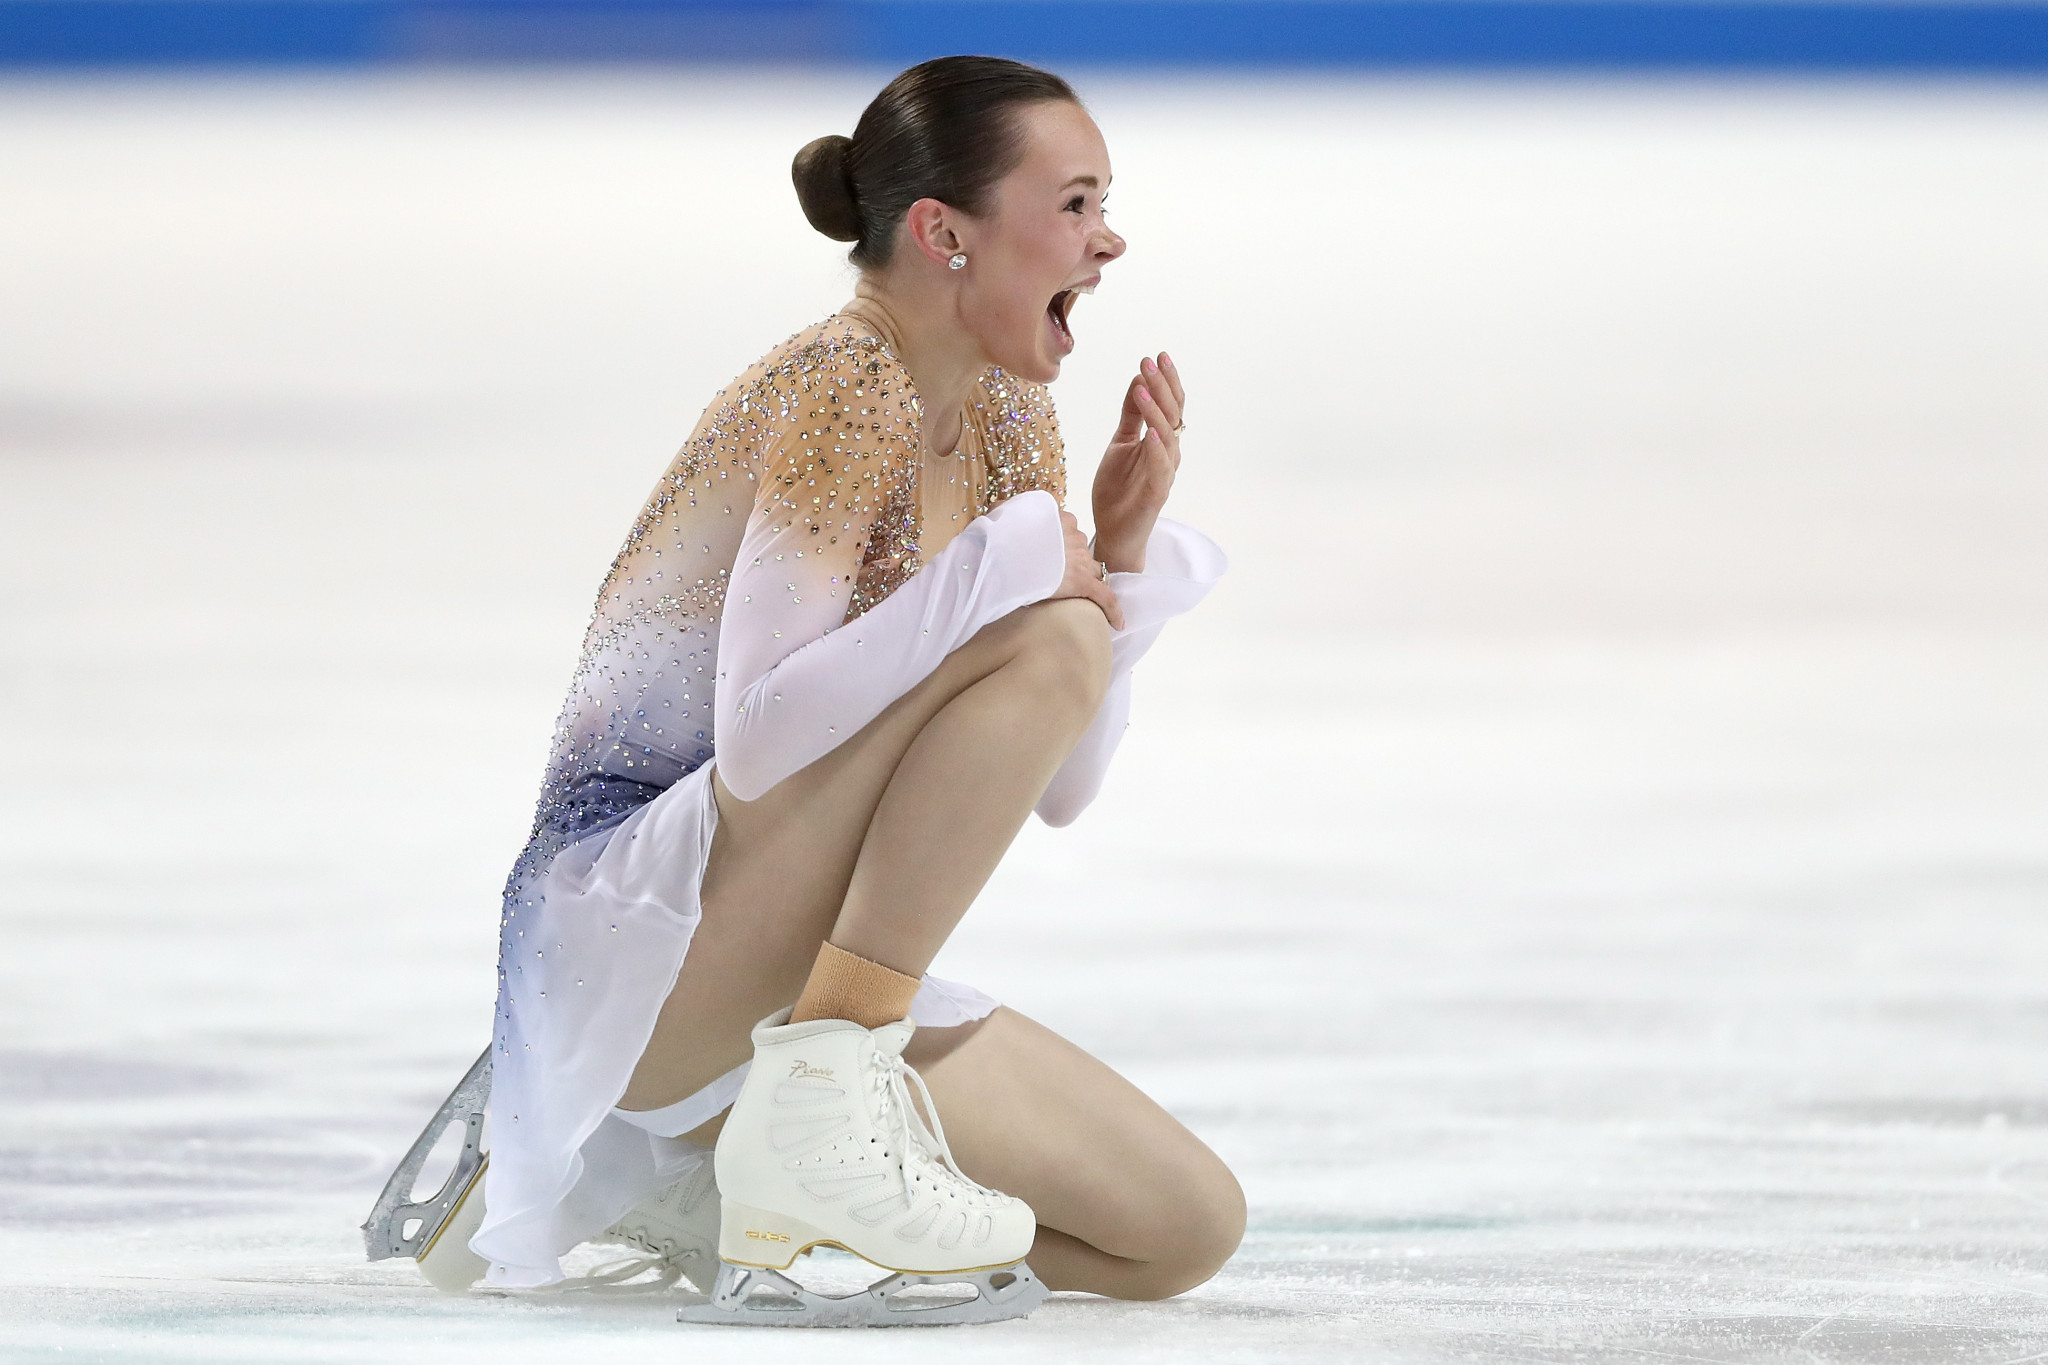 Mariah Bell triumphed in the women's online competition set up by US Figure Skating ©Getty Images